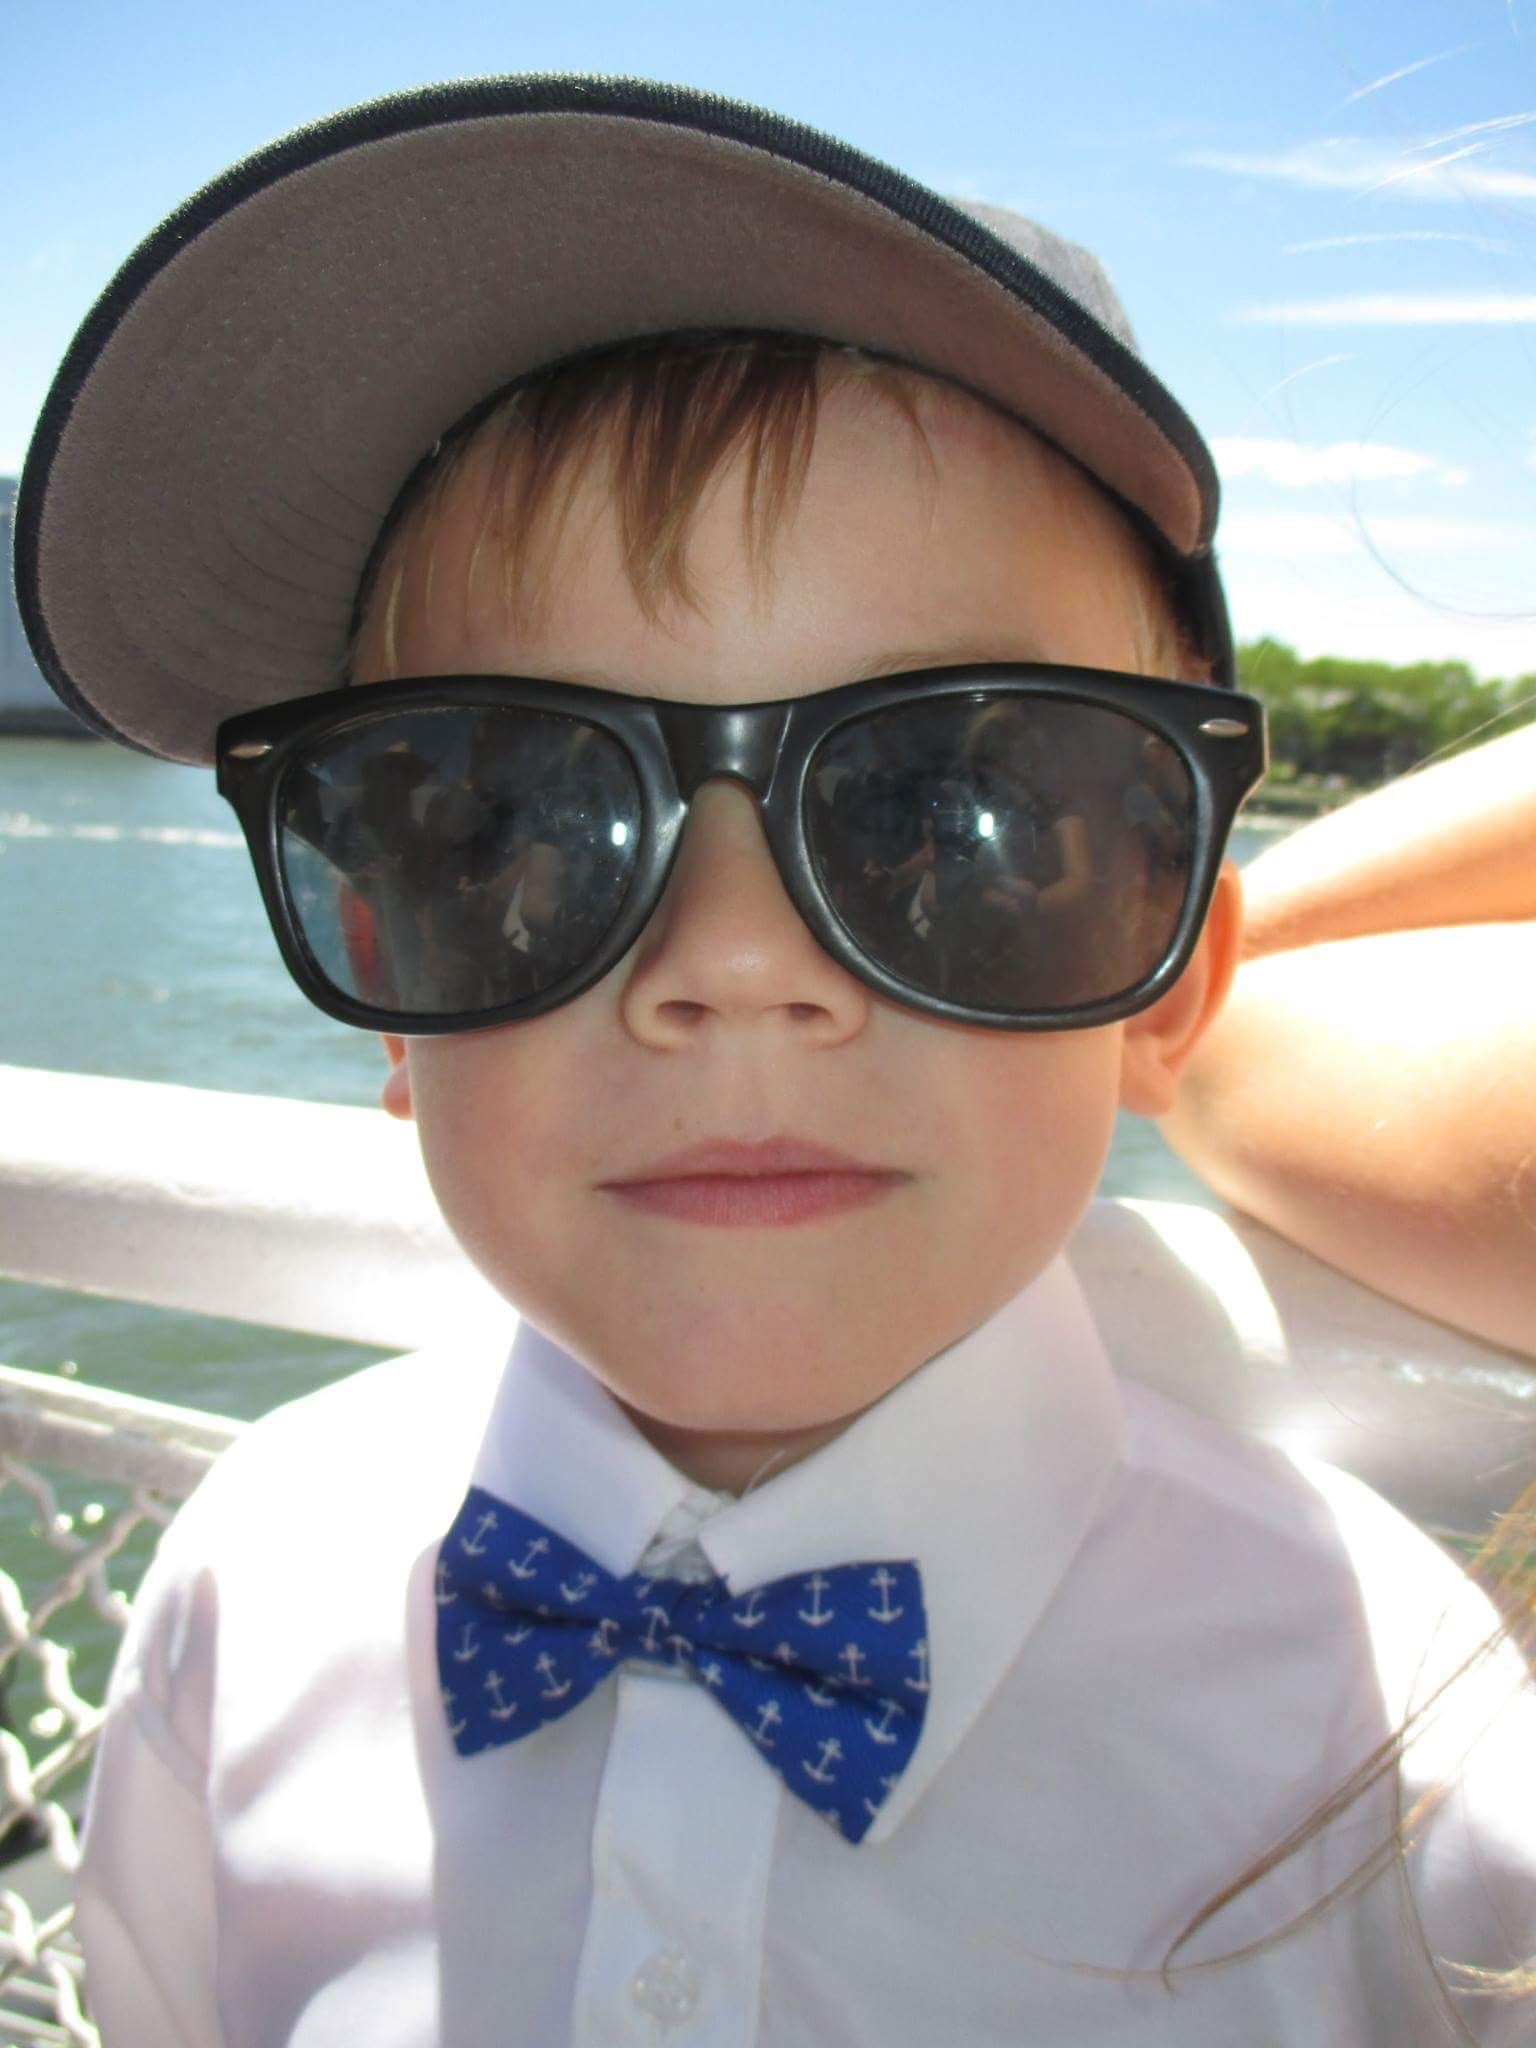 a3962cf8ef51 Theo looking #dapper in our Anchorman boys' bow tie! Lazyjackpress.com  #kids #boys #bowties #kidswear #fashion #style #anchors #preppy #cheers